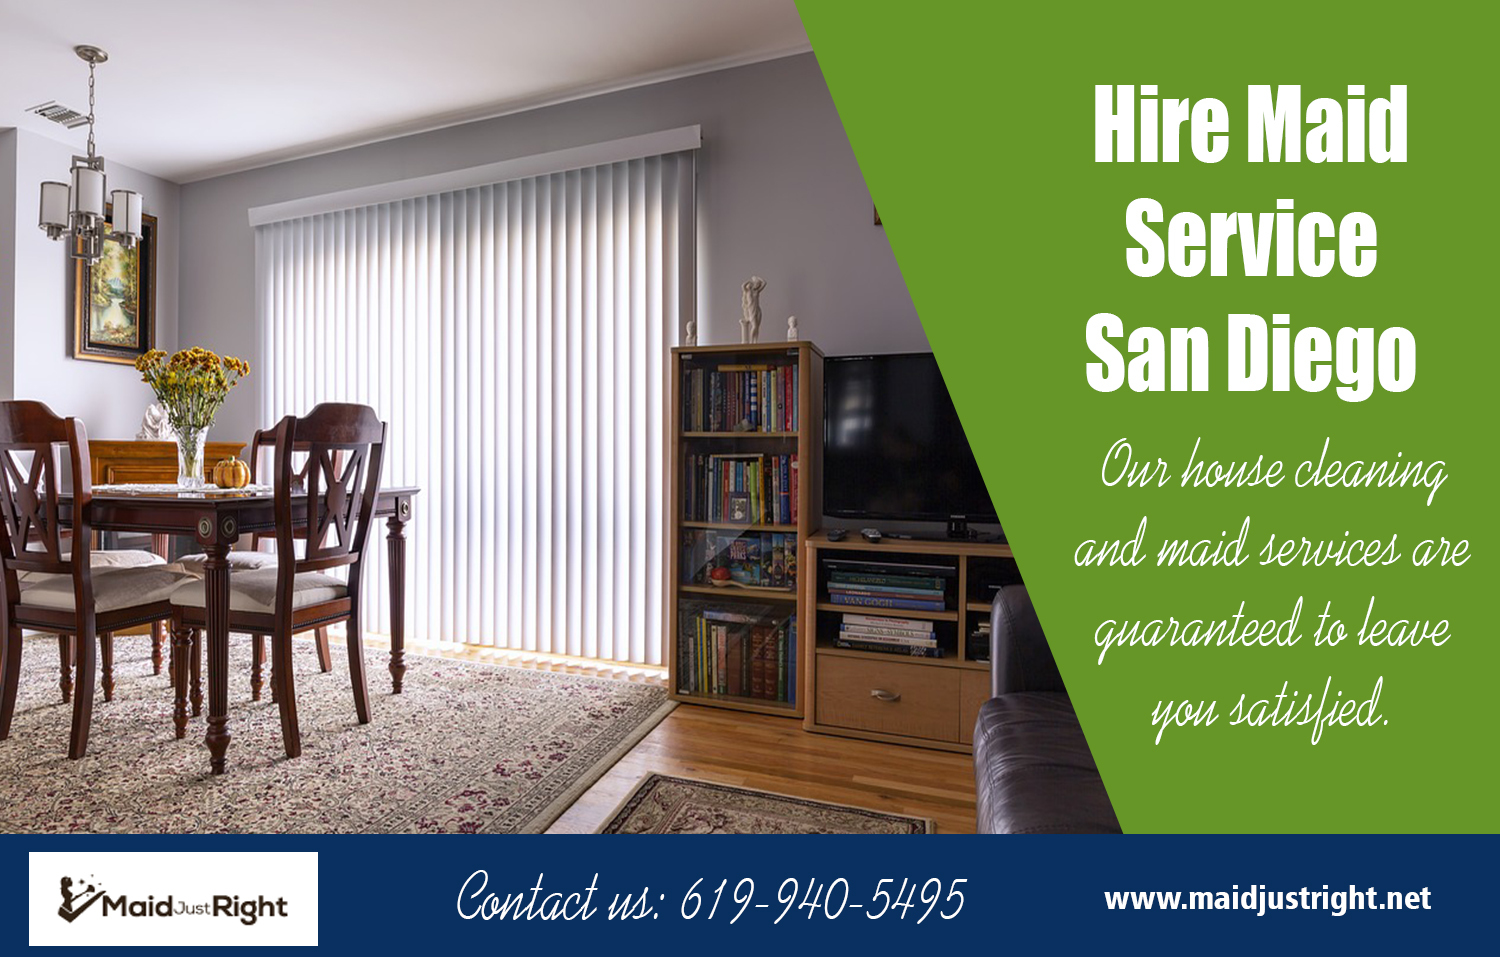 Hire Maid Service San Diego | Call Us - 619-940-5495 | maidjustright.net